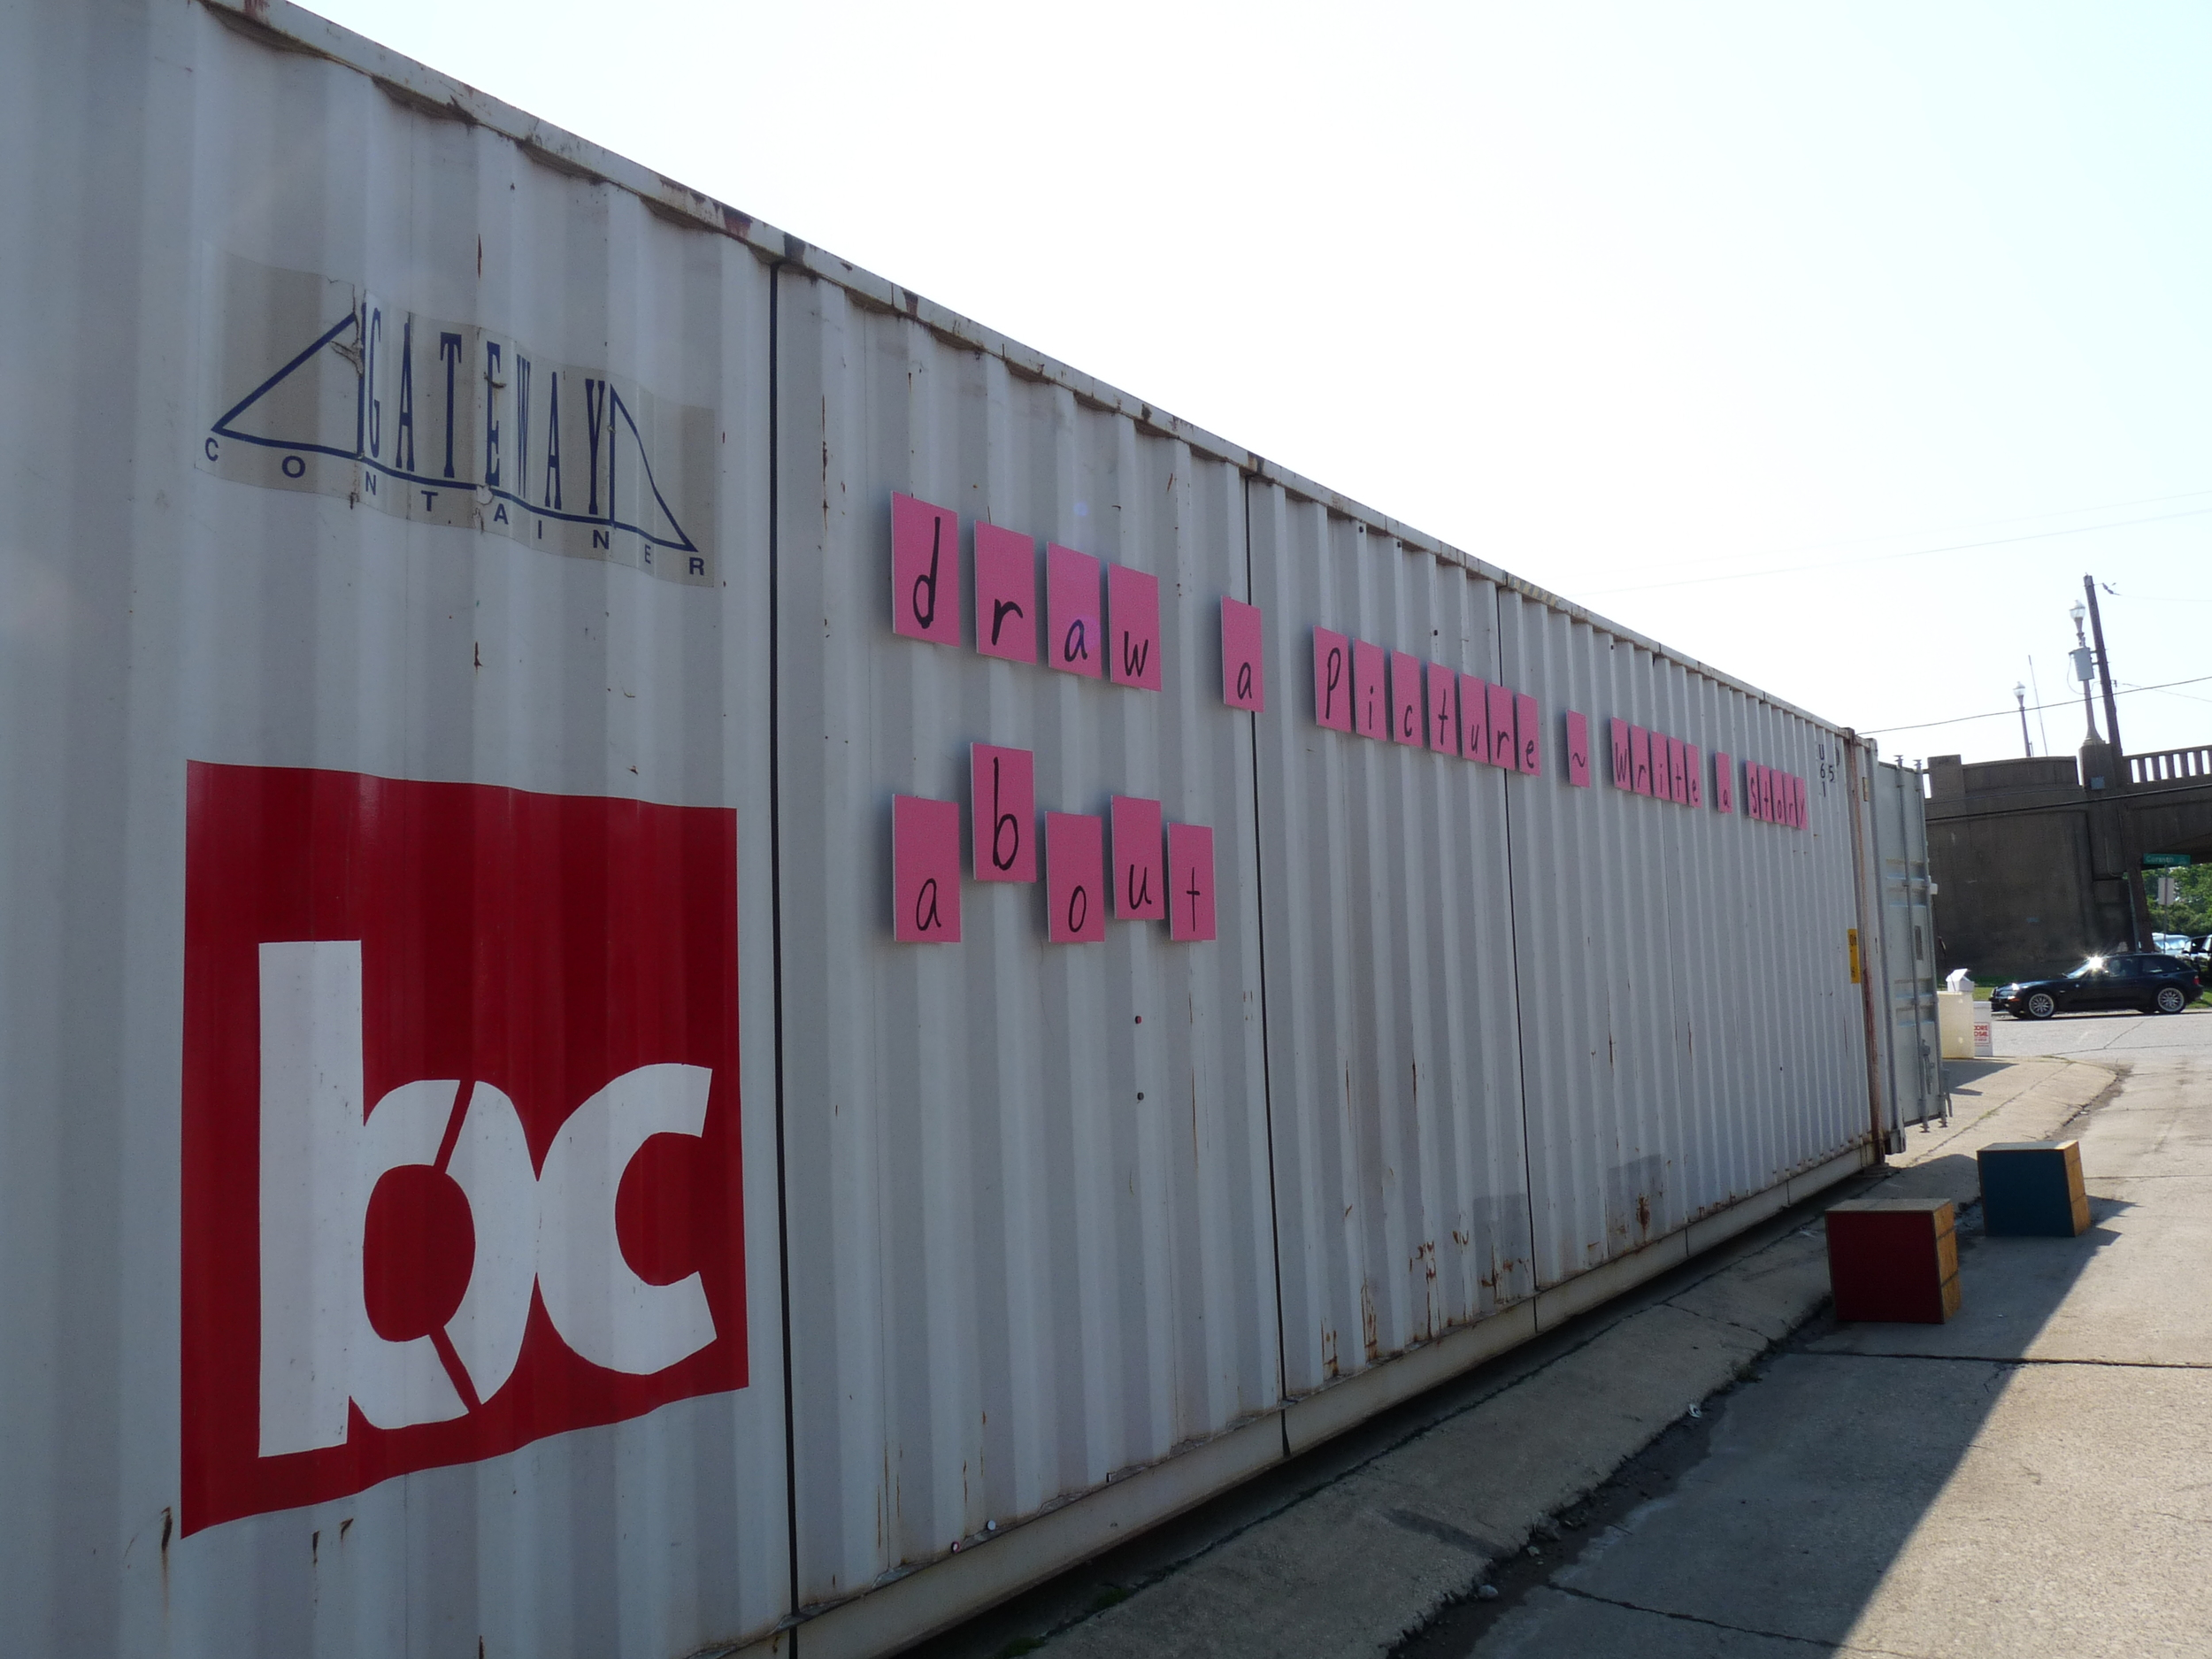 bcW's 45-foot long container served as mobile gallery.